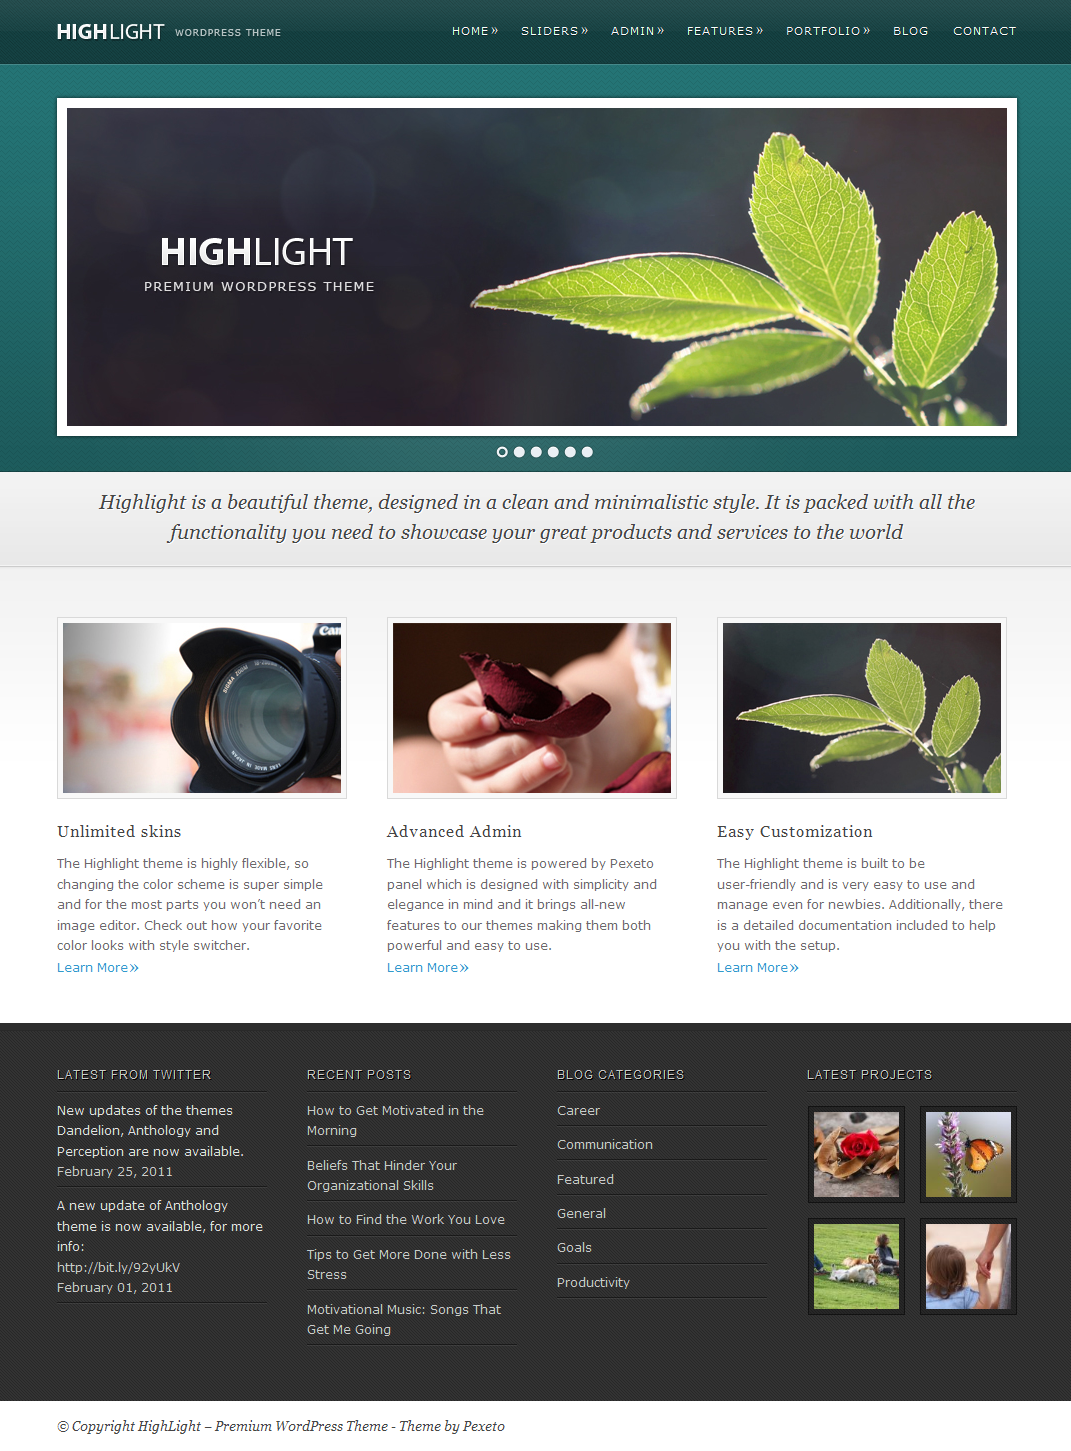 Highlight - Powerful Premium WordPress Theme